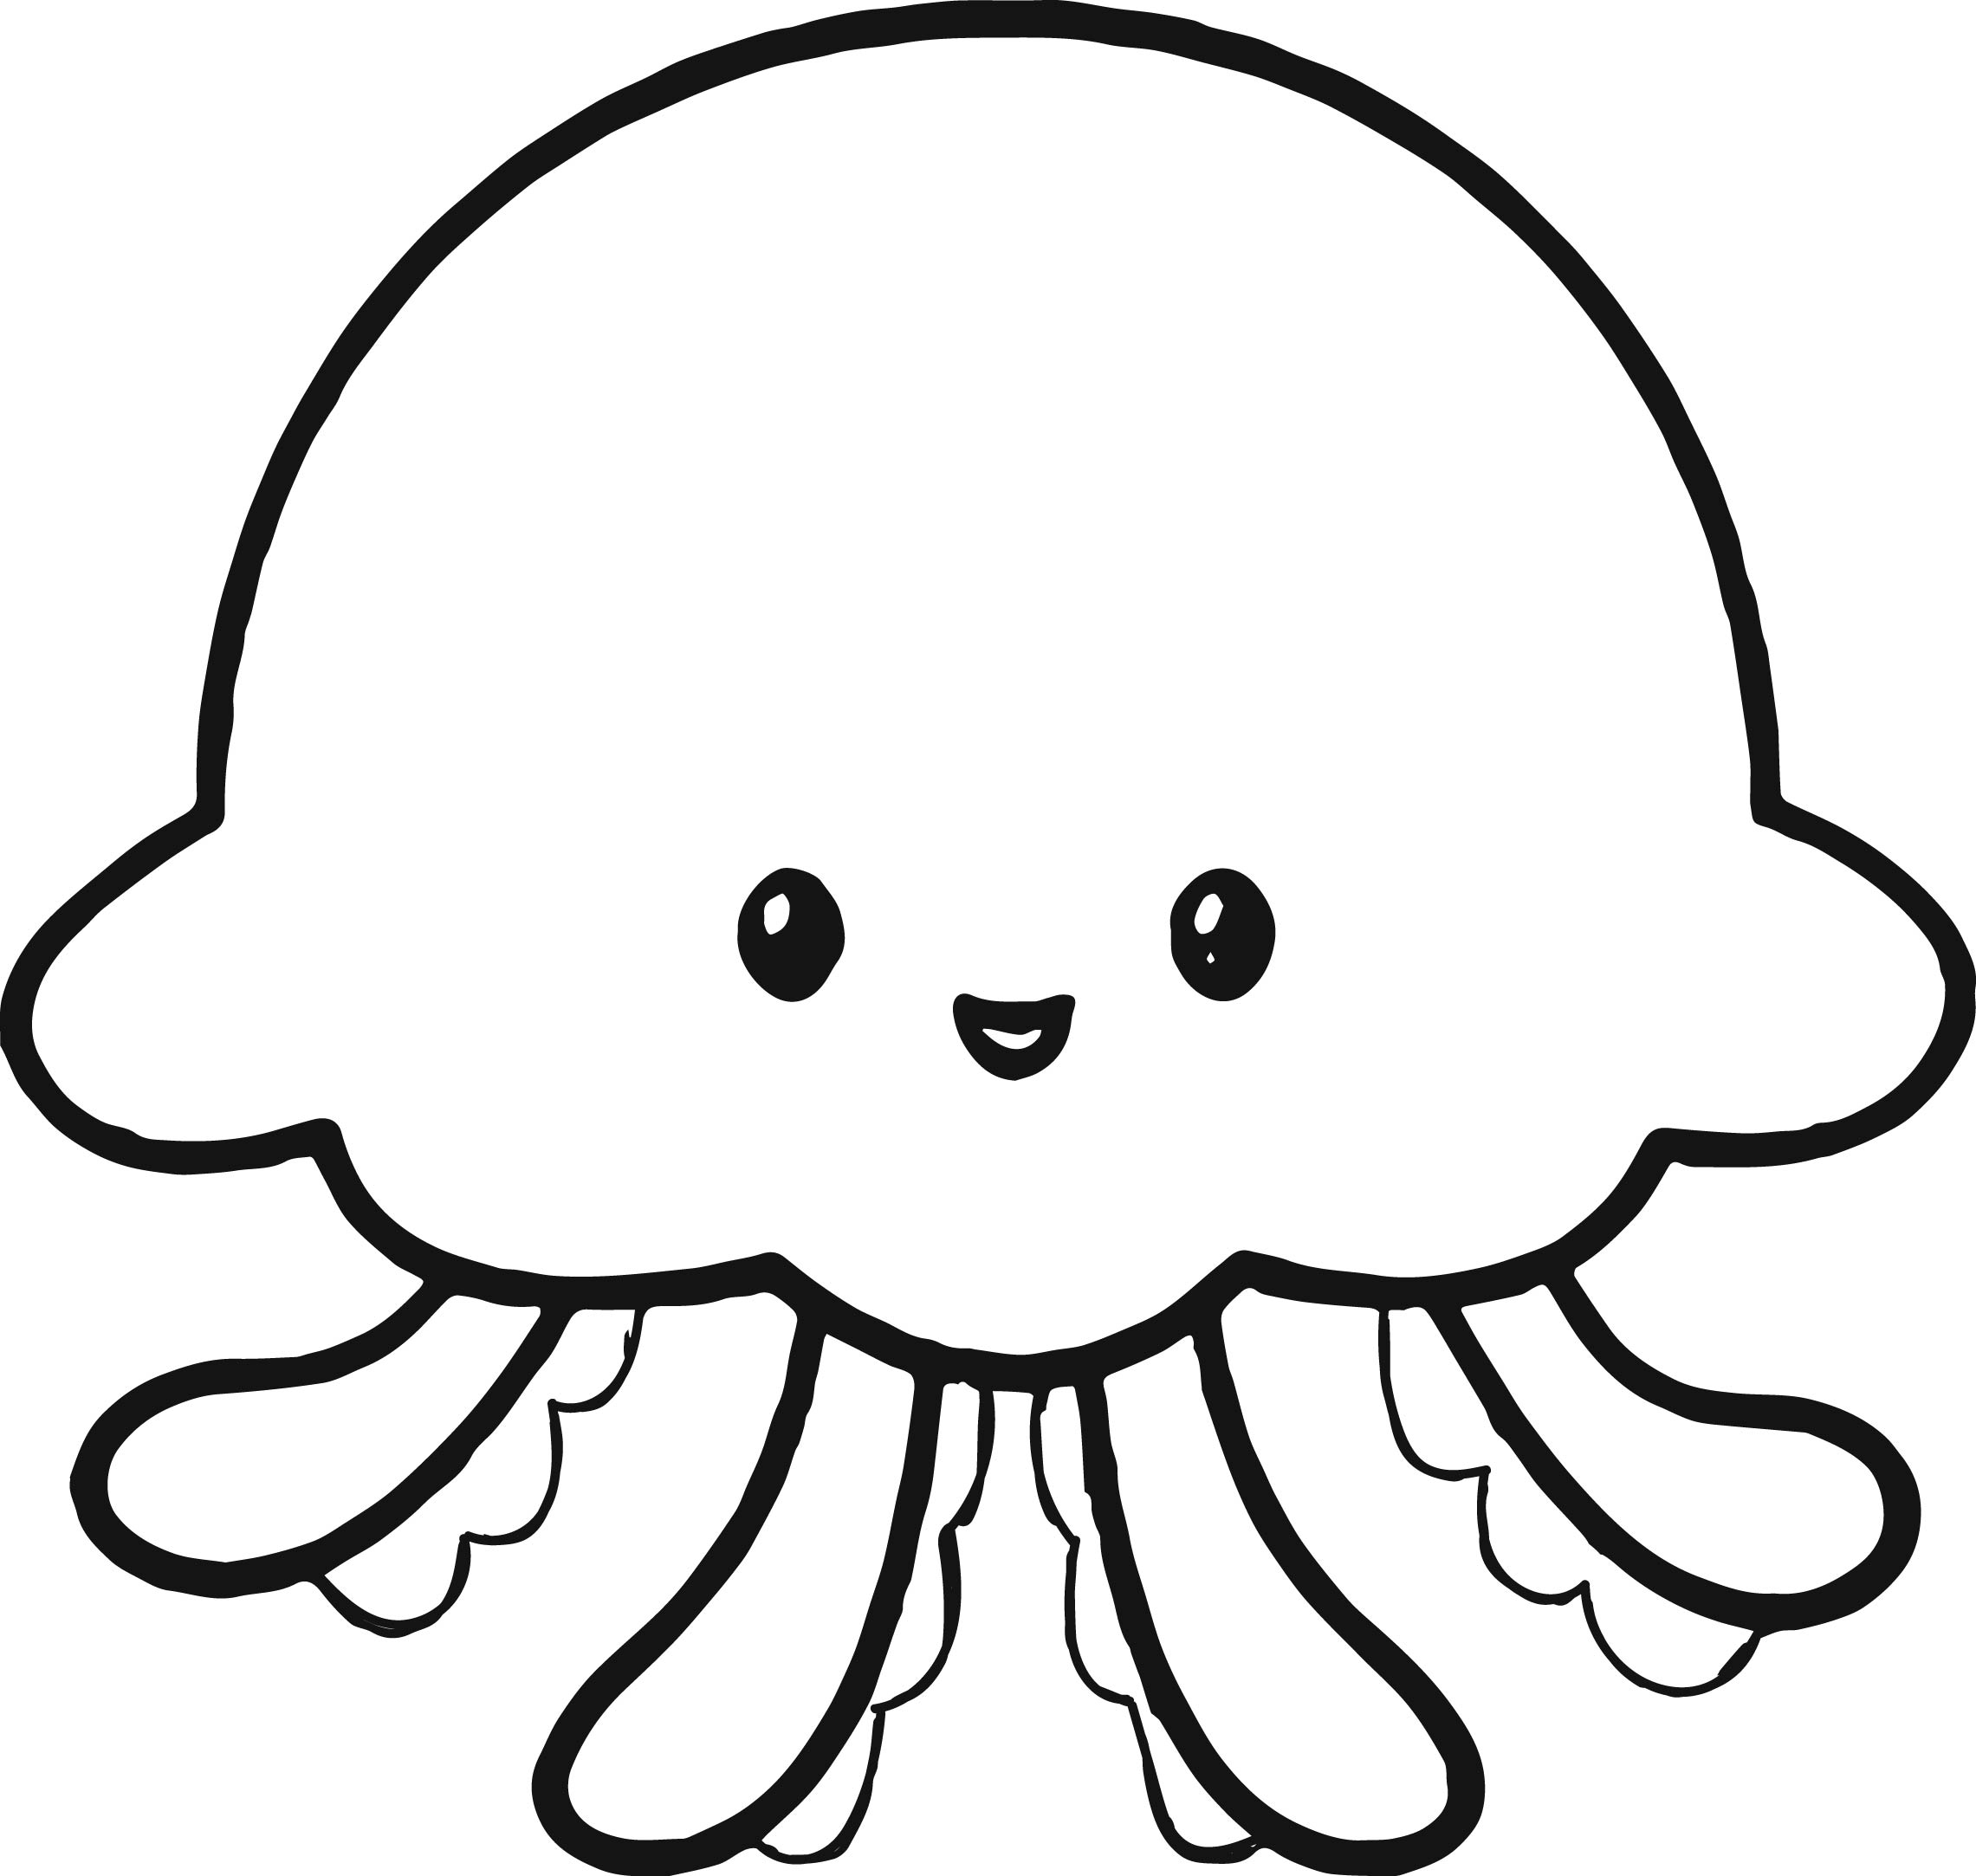 Crab Patterns Worksheet